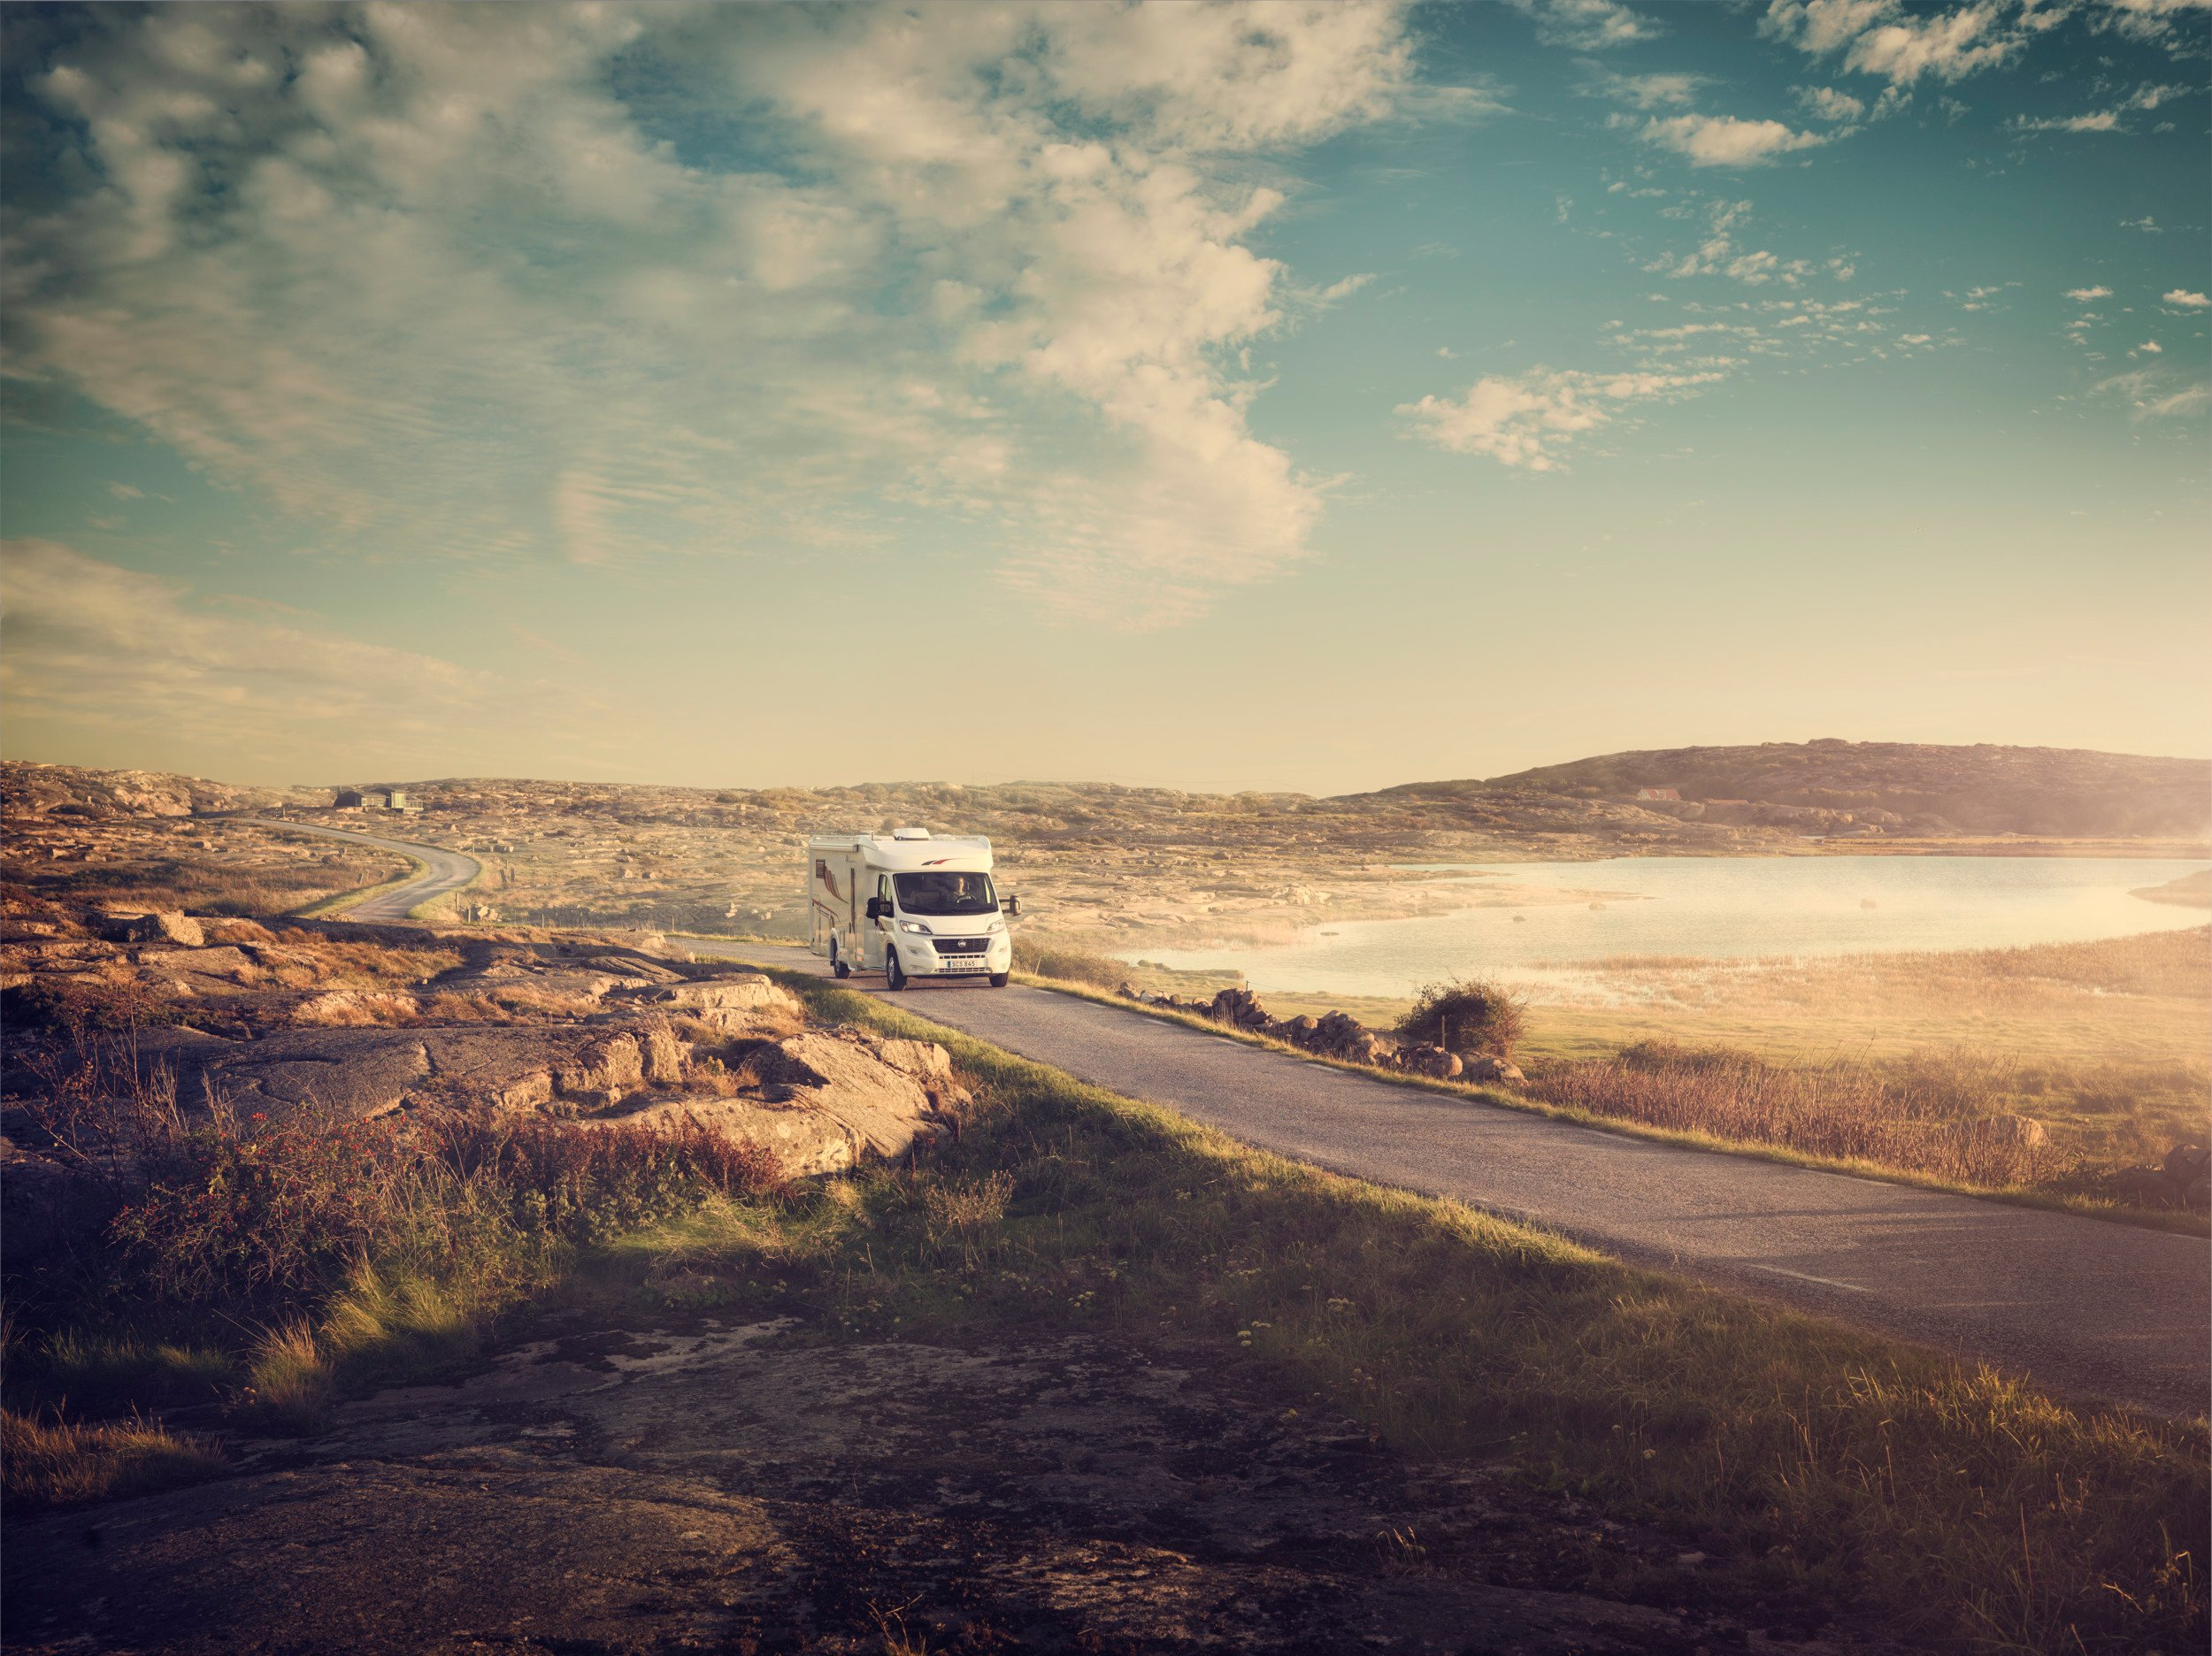 Dometic rv road waterV2, rv, truck, road, water, sea, seaside, outdoors, nature